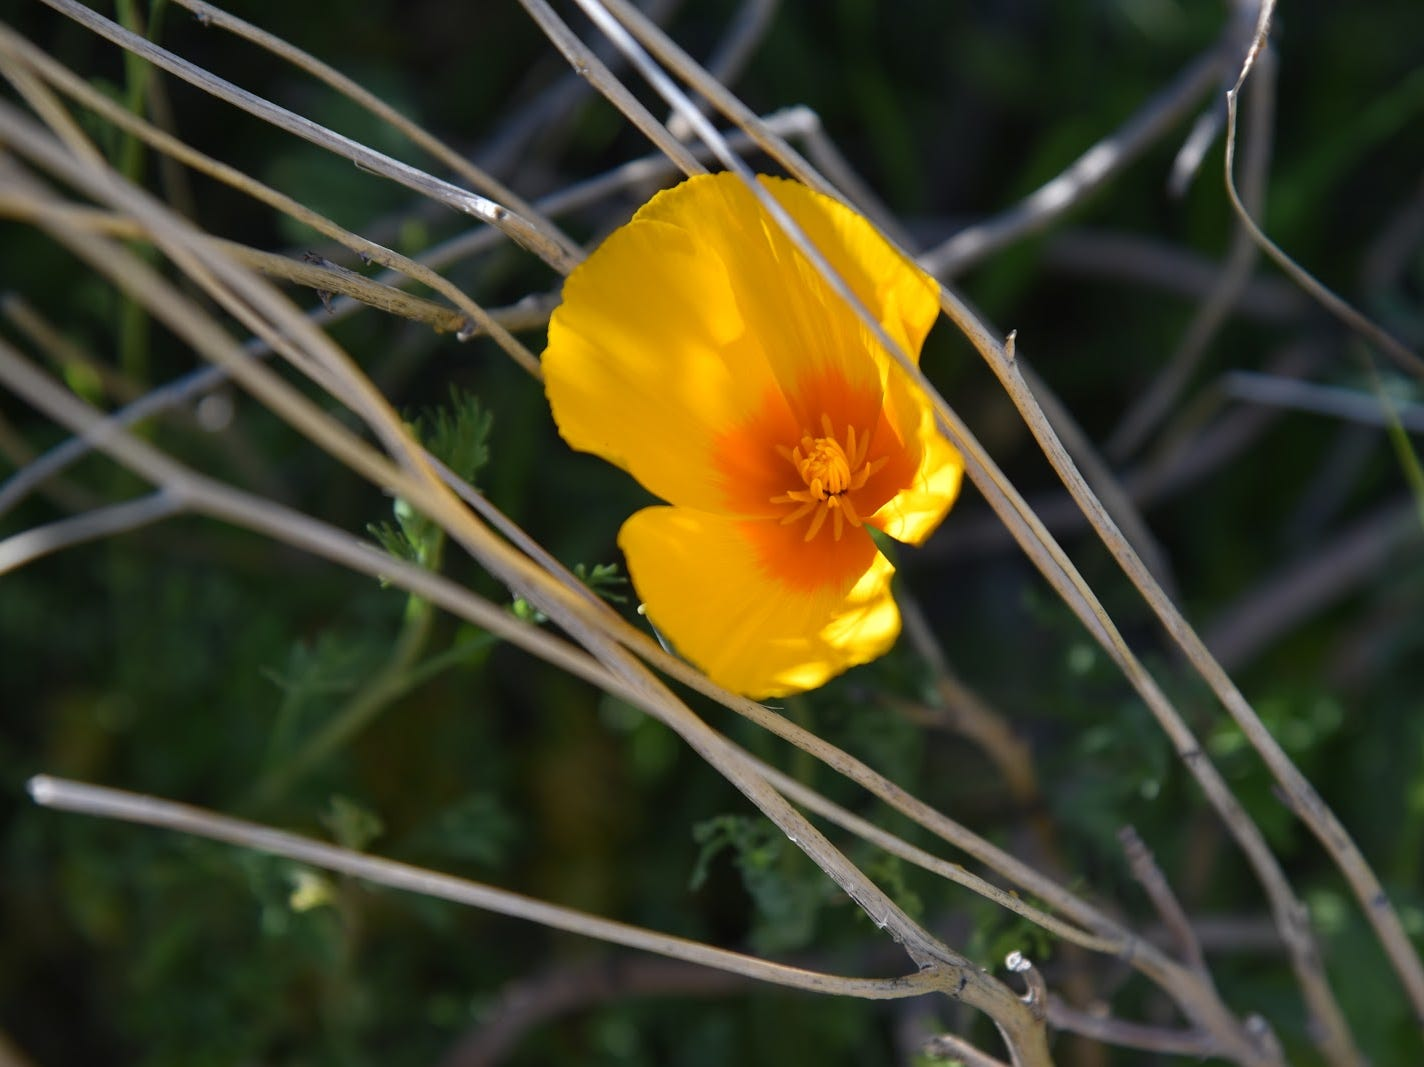 A lone Mexican gold poppy hides among dry grasses.